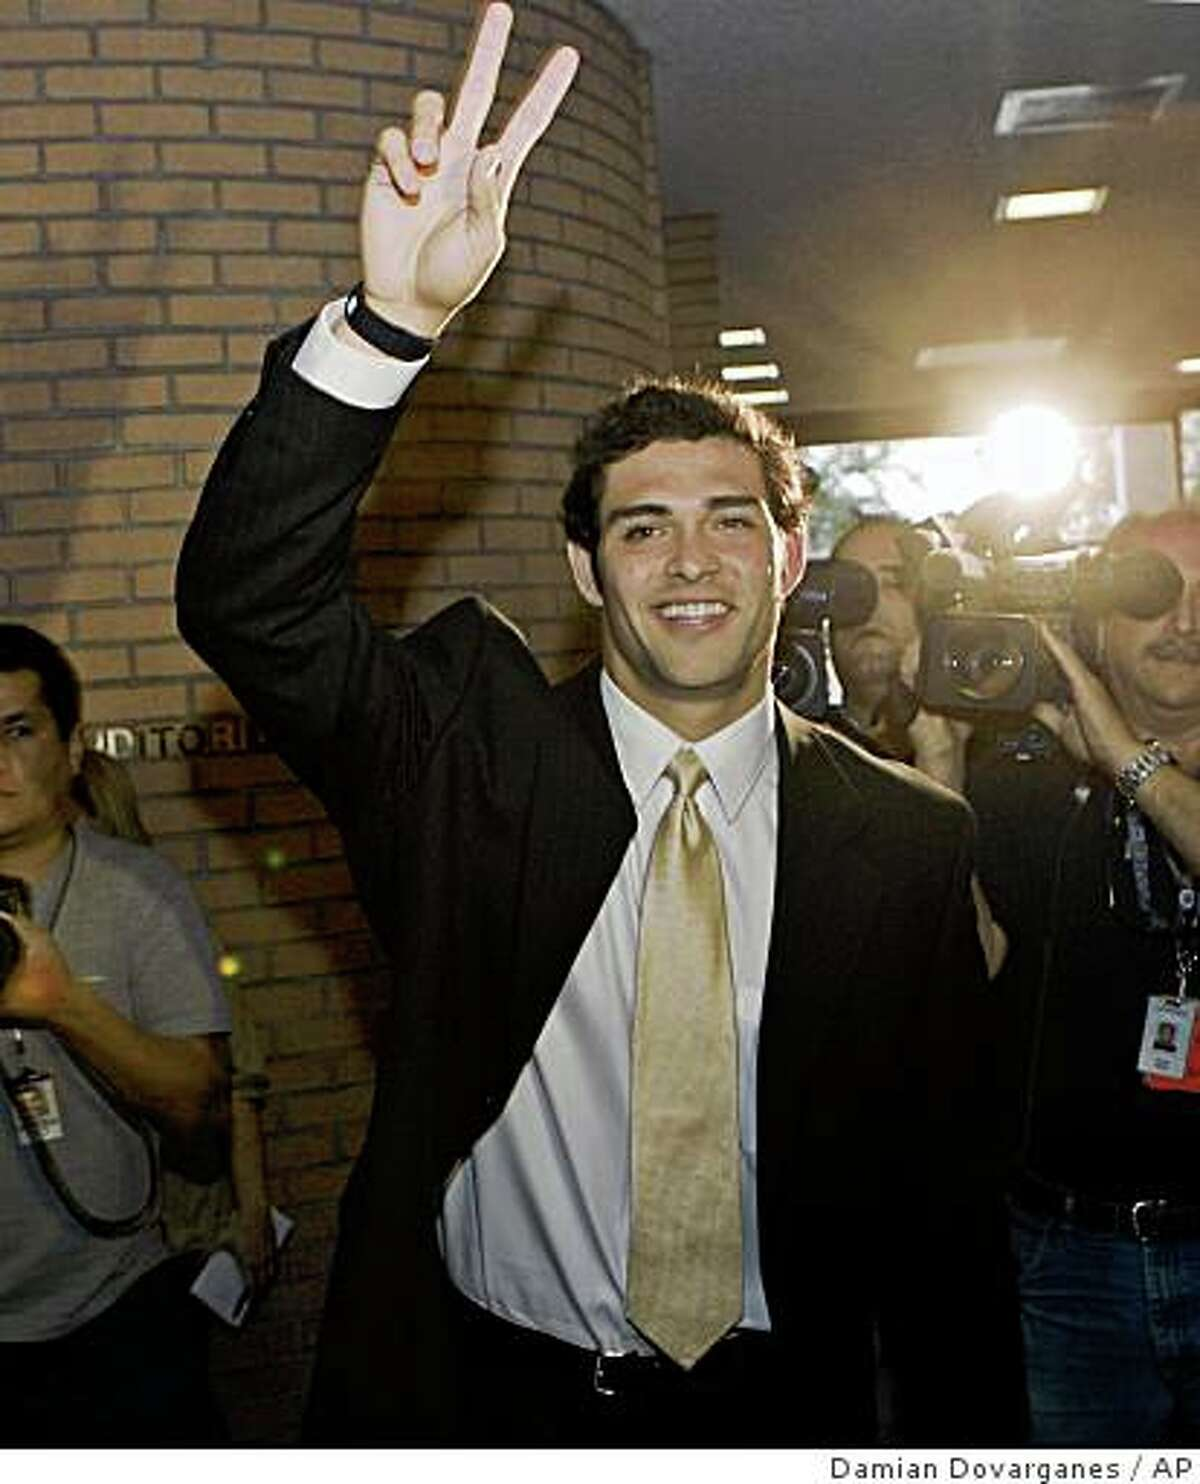 Southern California quarterback Mark Sanchez waves to fans after announcing that he would make himself available for the NFL draft at a news conference at the USC campus in Los Angeles on Thursday, Jan. 15, 2009. (AP Photo/Damian Dovarganes)